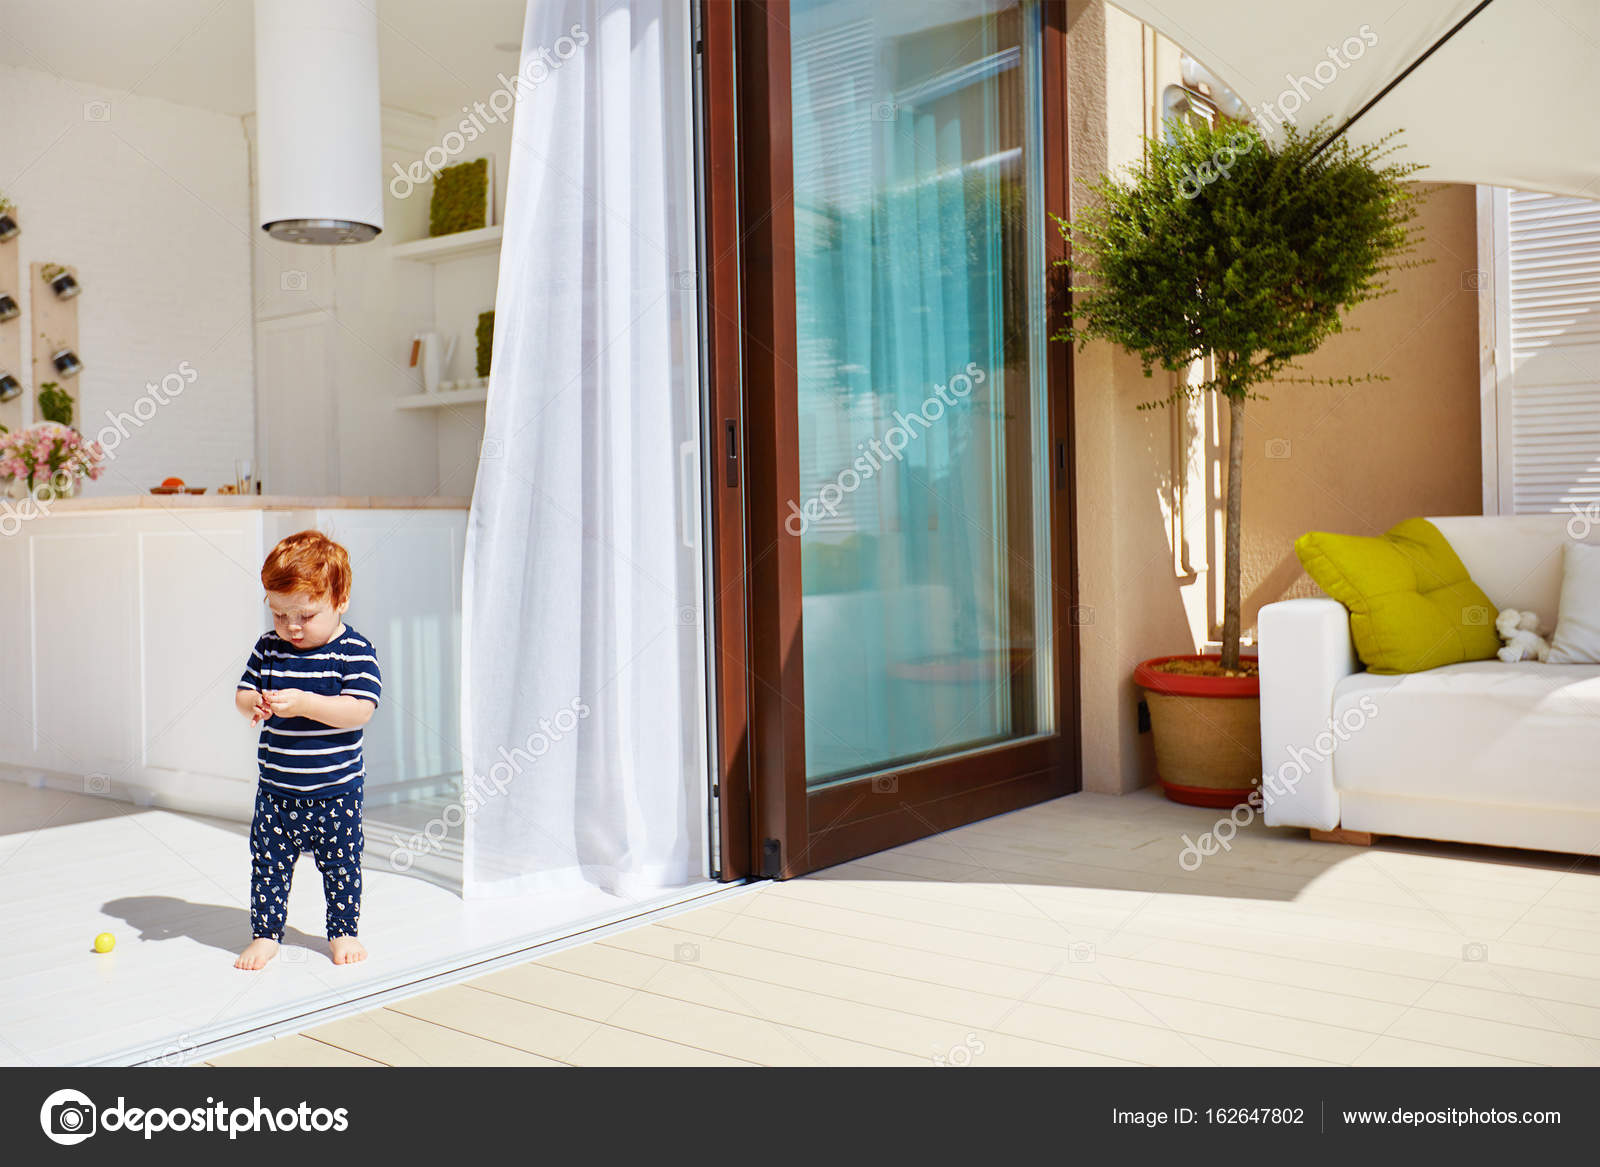 A toddler baby walking on open space kitchen with roof top patio and sliding doors u2014 Photo by olesiabilkei & a toddler baby walking on open space kitchen with roof top patio and ...